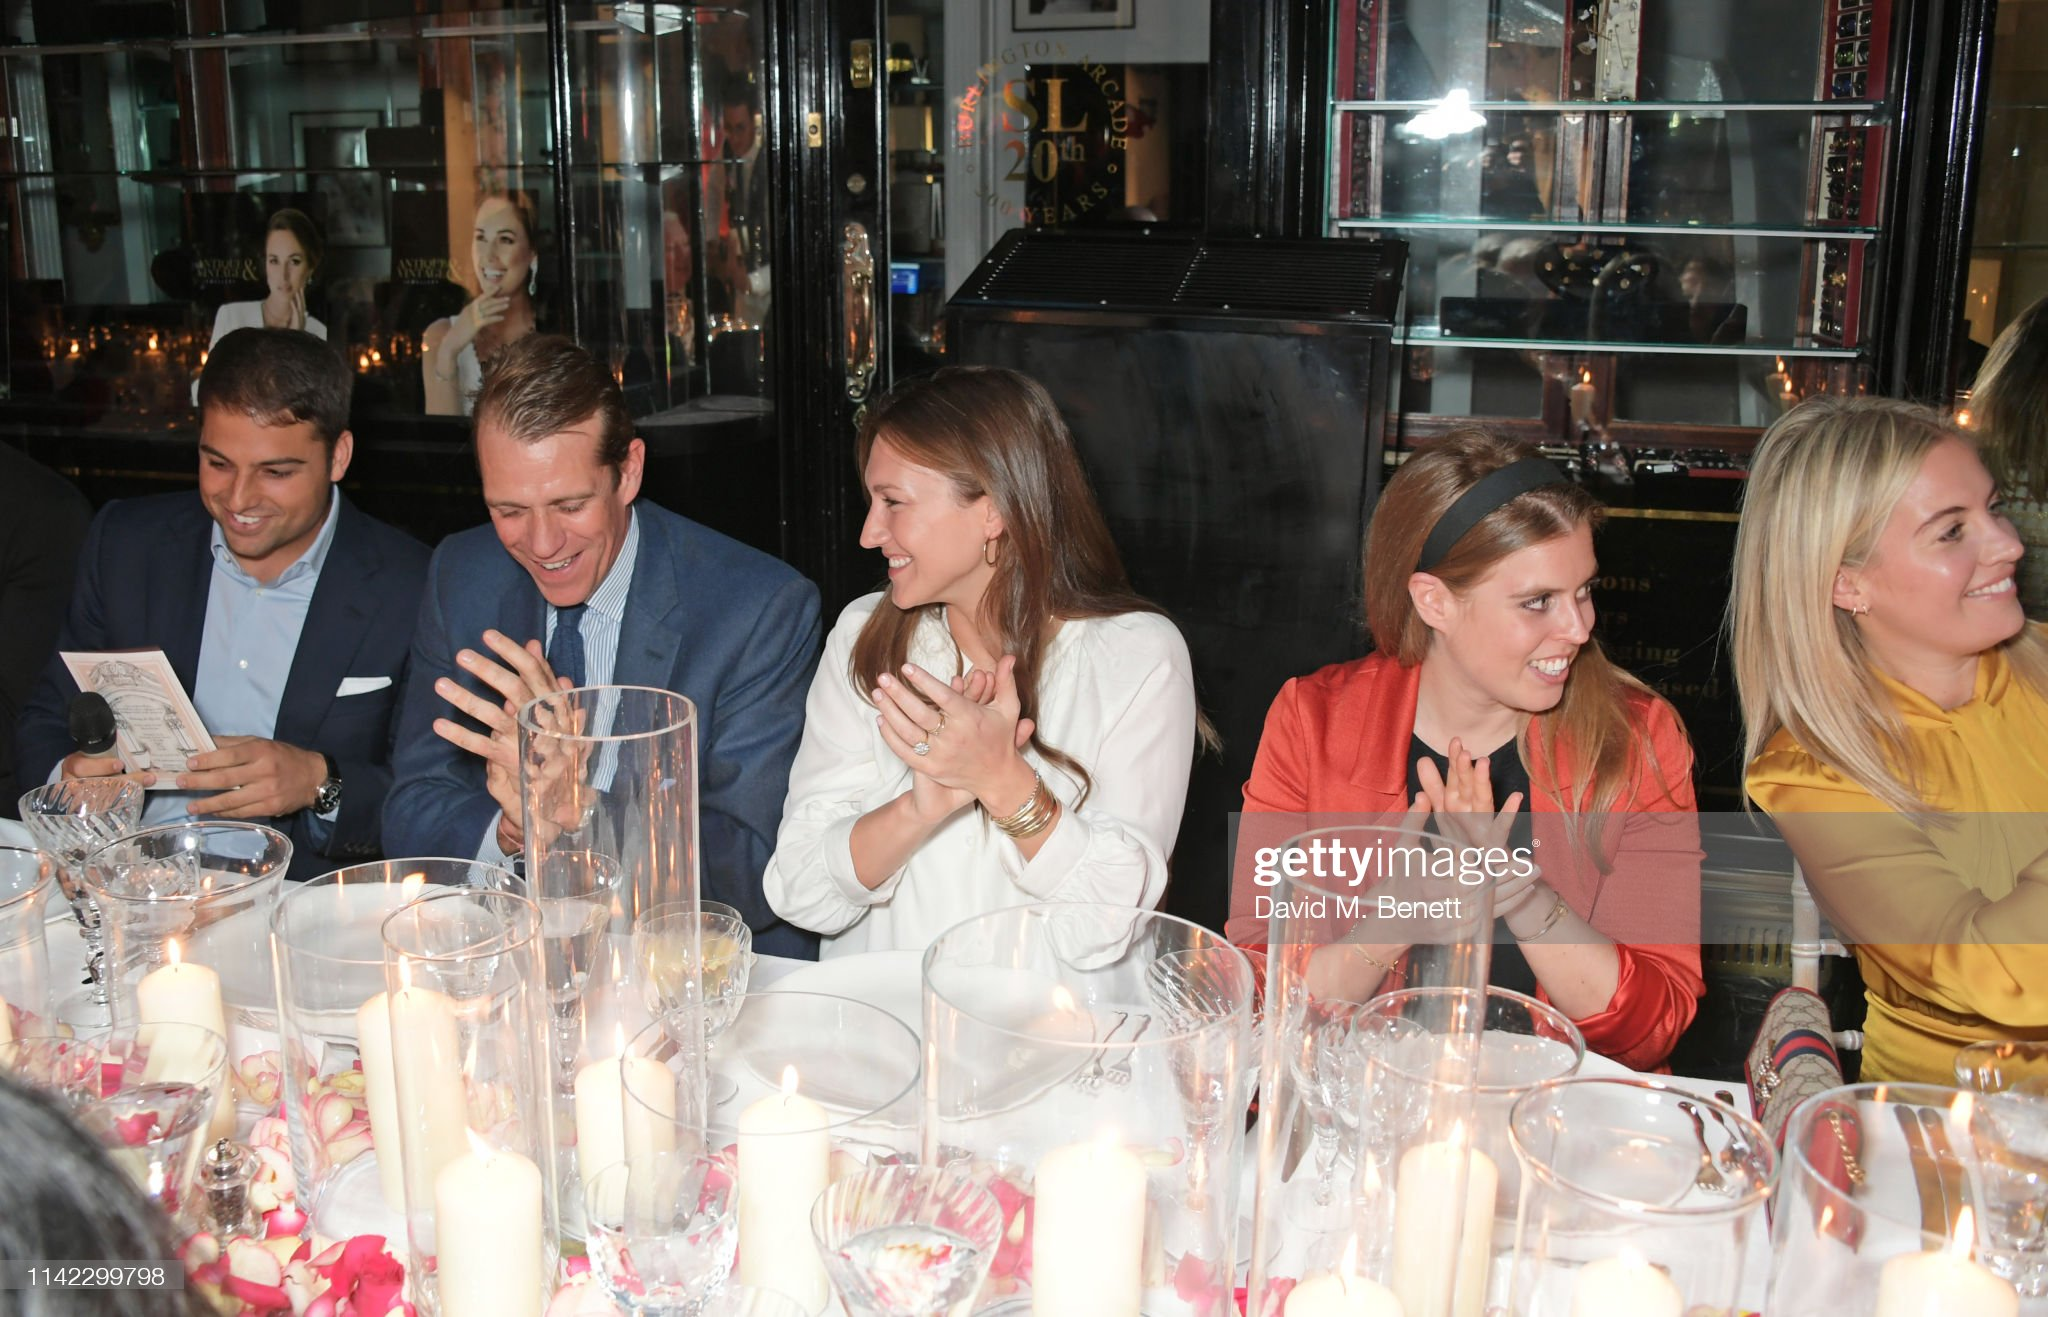 https://media.gettyimages.com/photos/jamie-reuben-ben-elliot-maryclare-winwood-princess-beatrice-of-york-picture-id1142299798?s=2048x2048